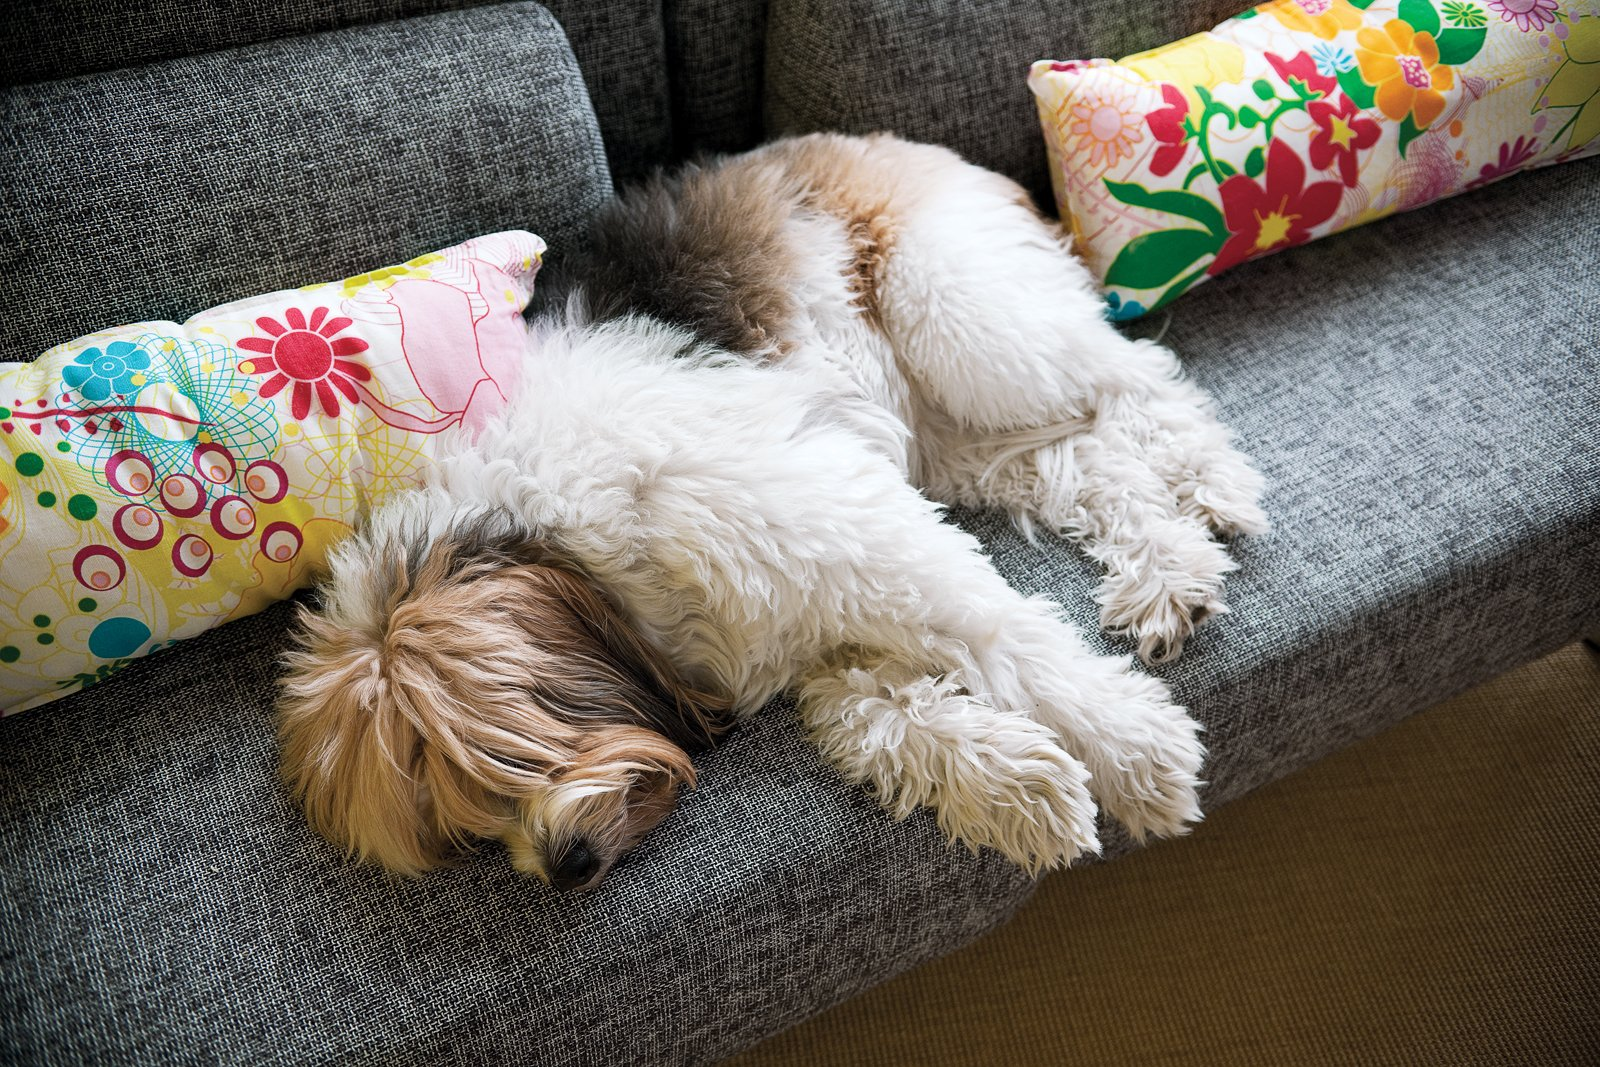 Pork Chop, the dog, has plenty of comfortable places to nap between meals.  Dogs Who Love Modern Design by Brian Karo from Chef's Table